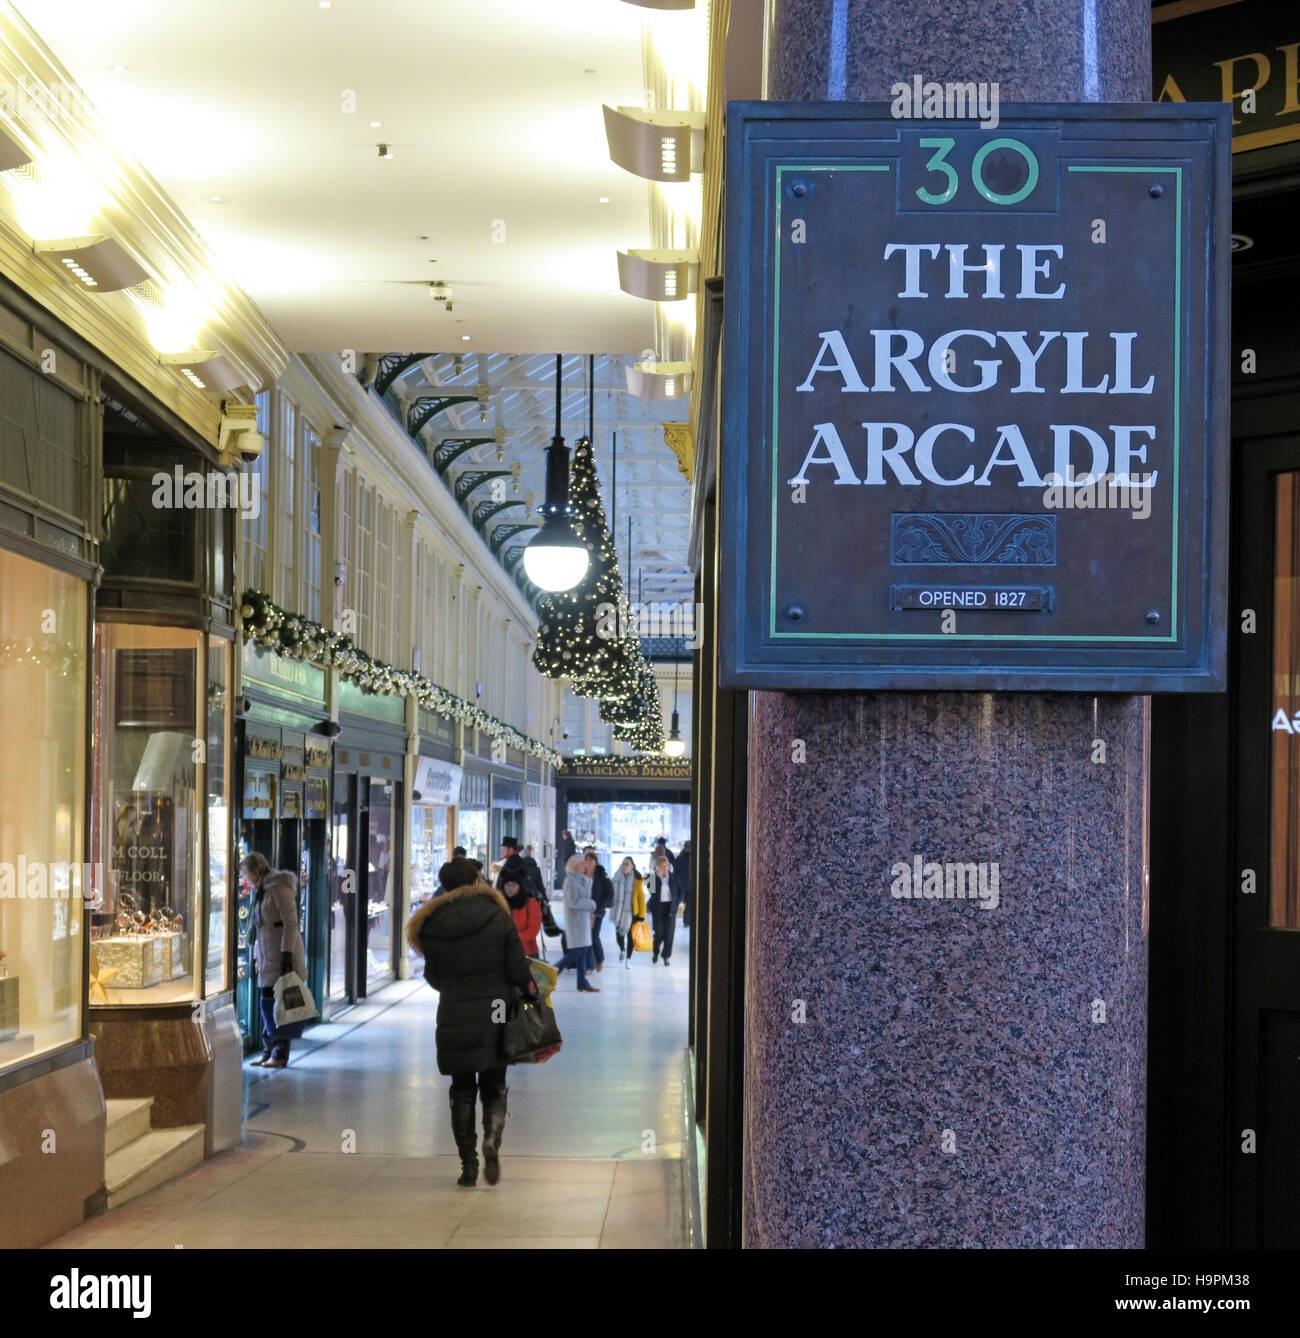 Entrance to the Argyll Arcade,Glasgow,Scotland,UK - Stock Image